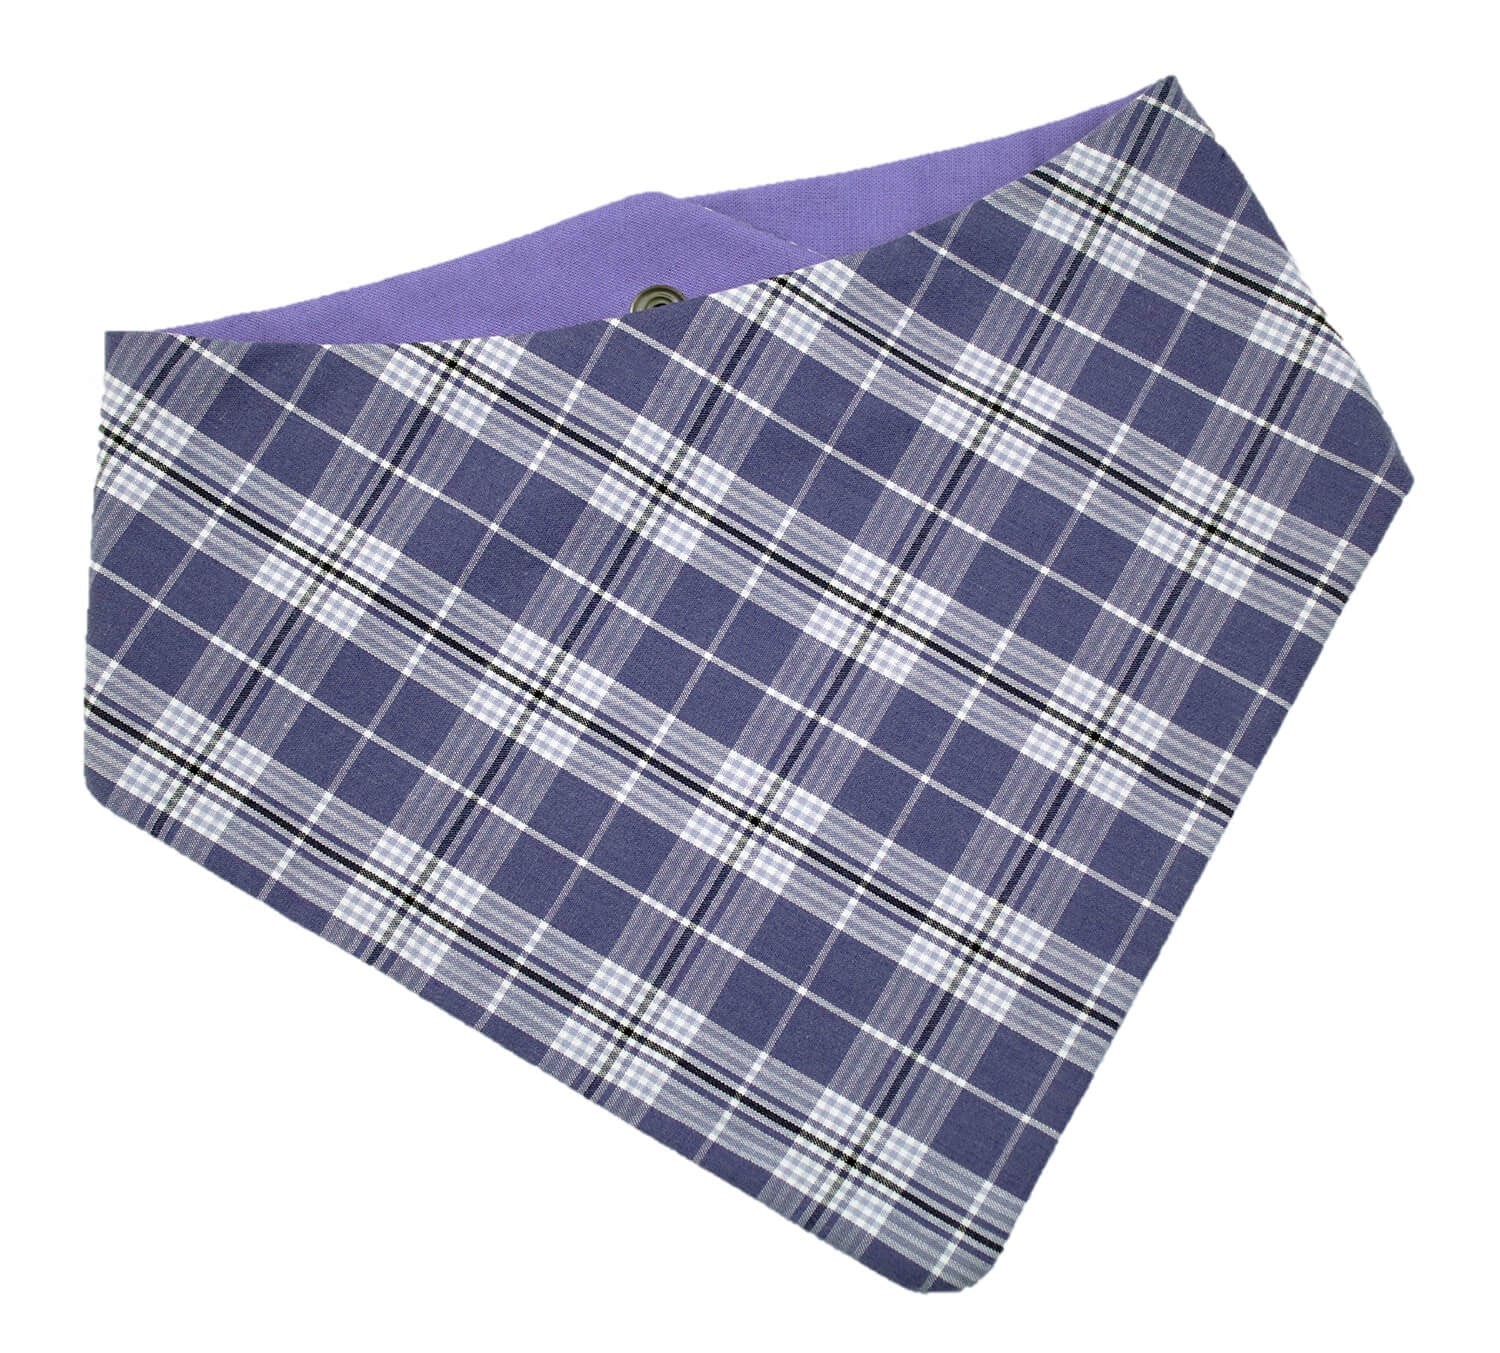 Lilac Plaid Bandana